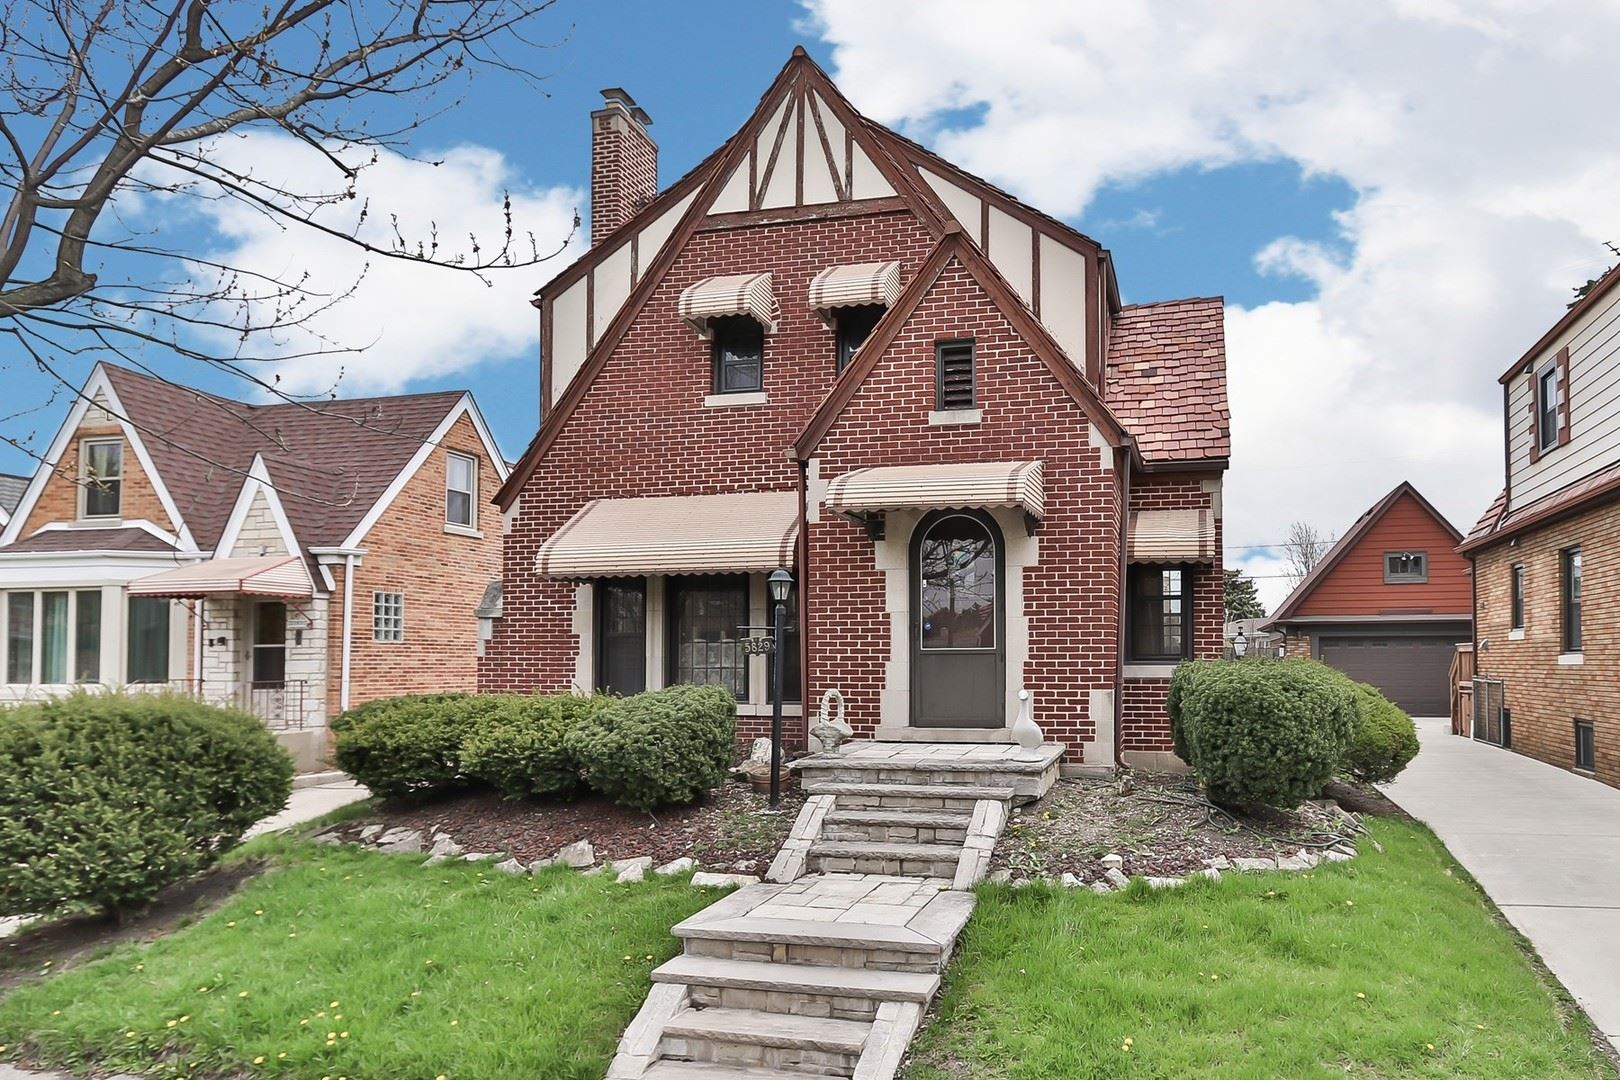 5829 N Odell Avenue, Chicago, IL 60631 - #: 10707658